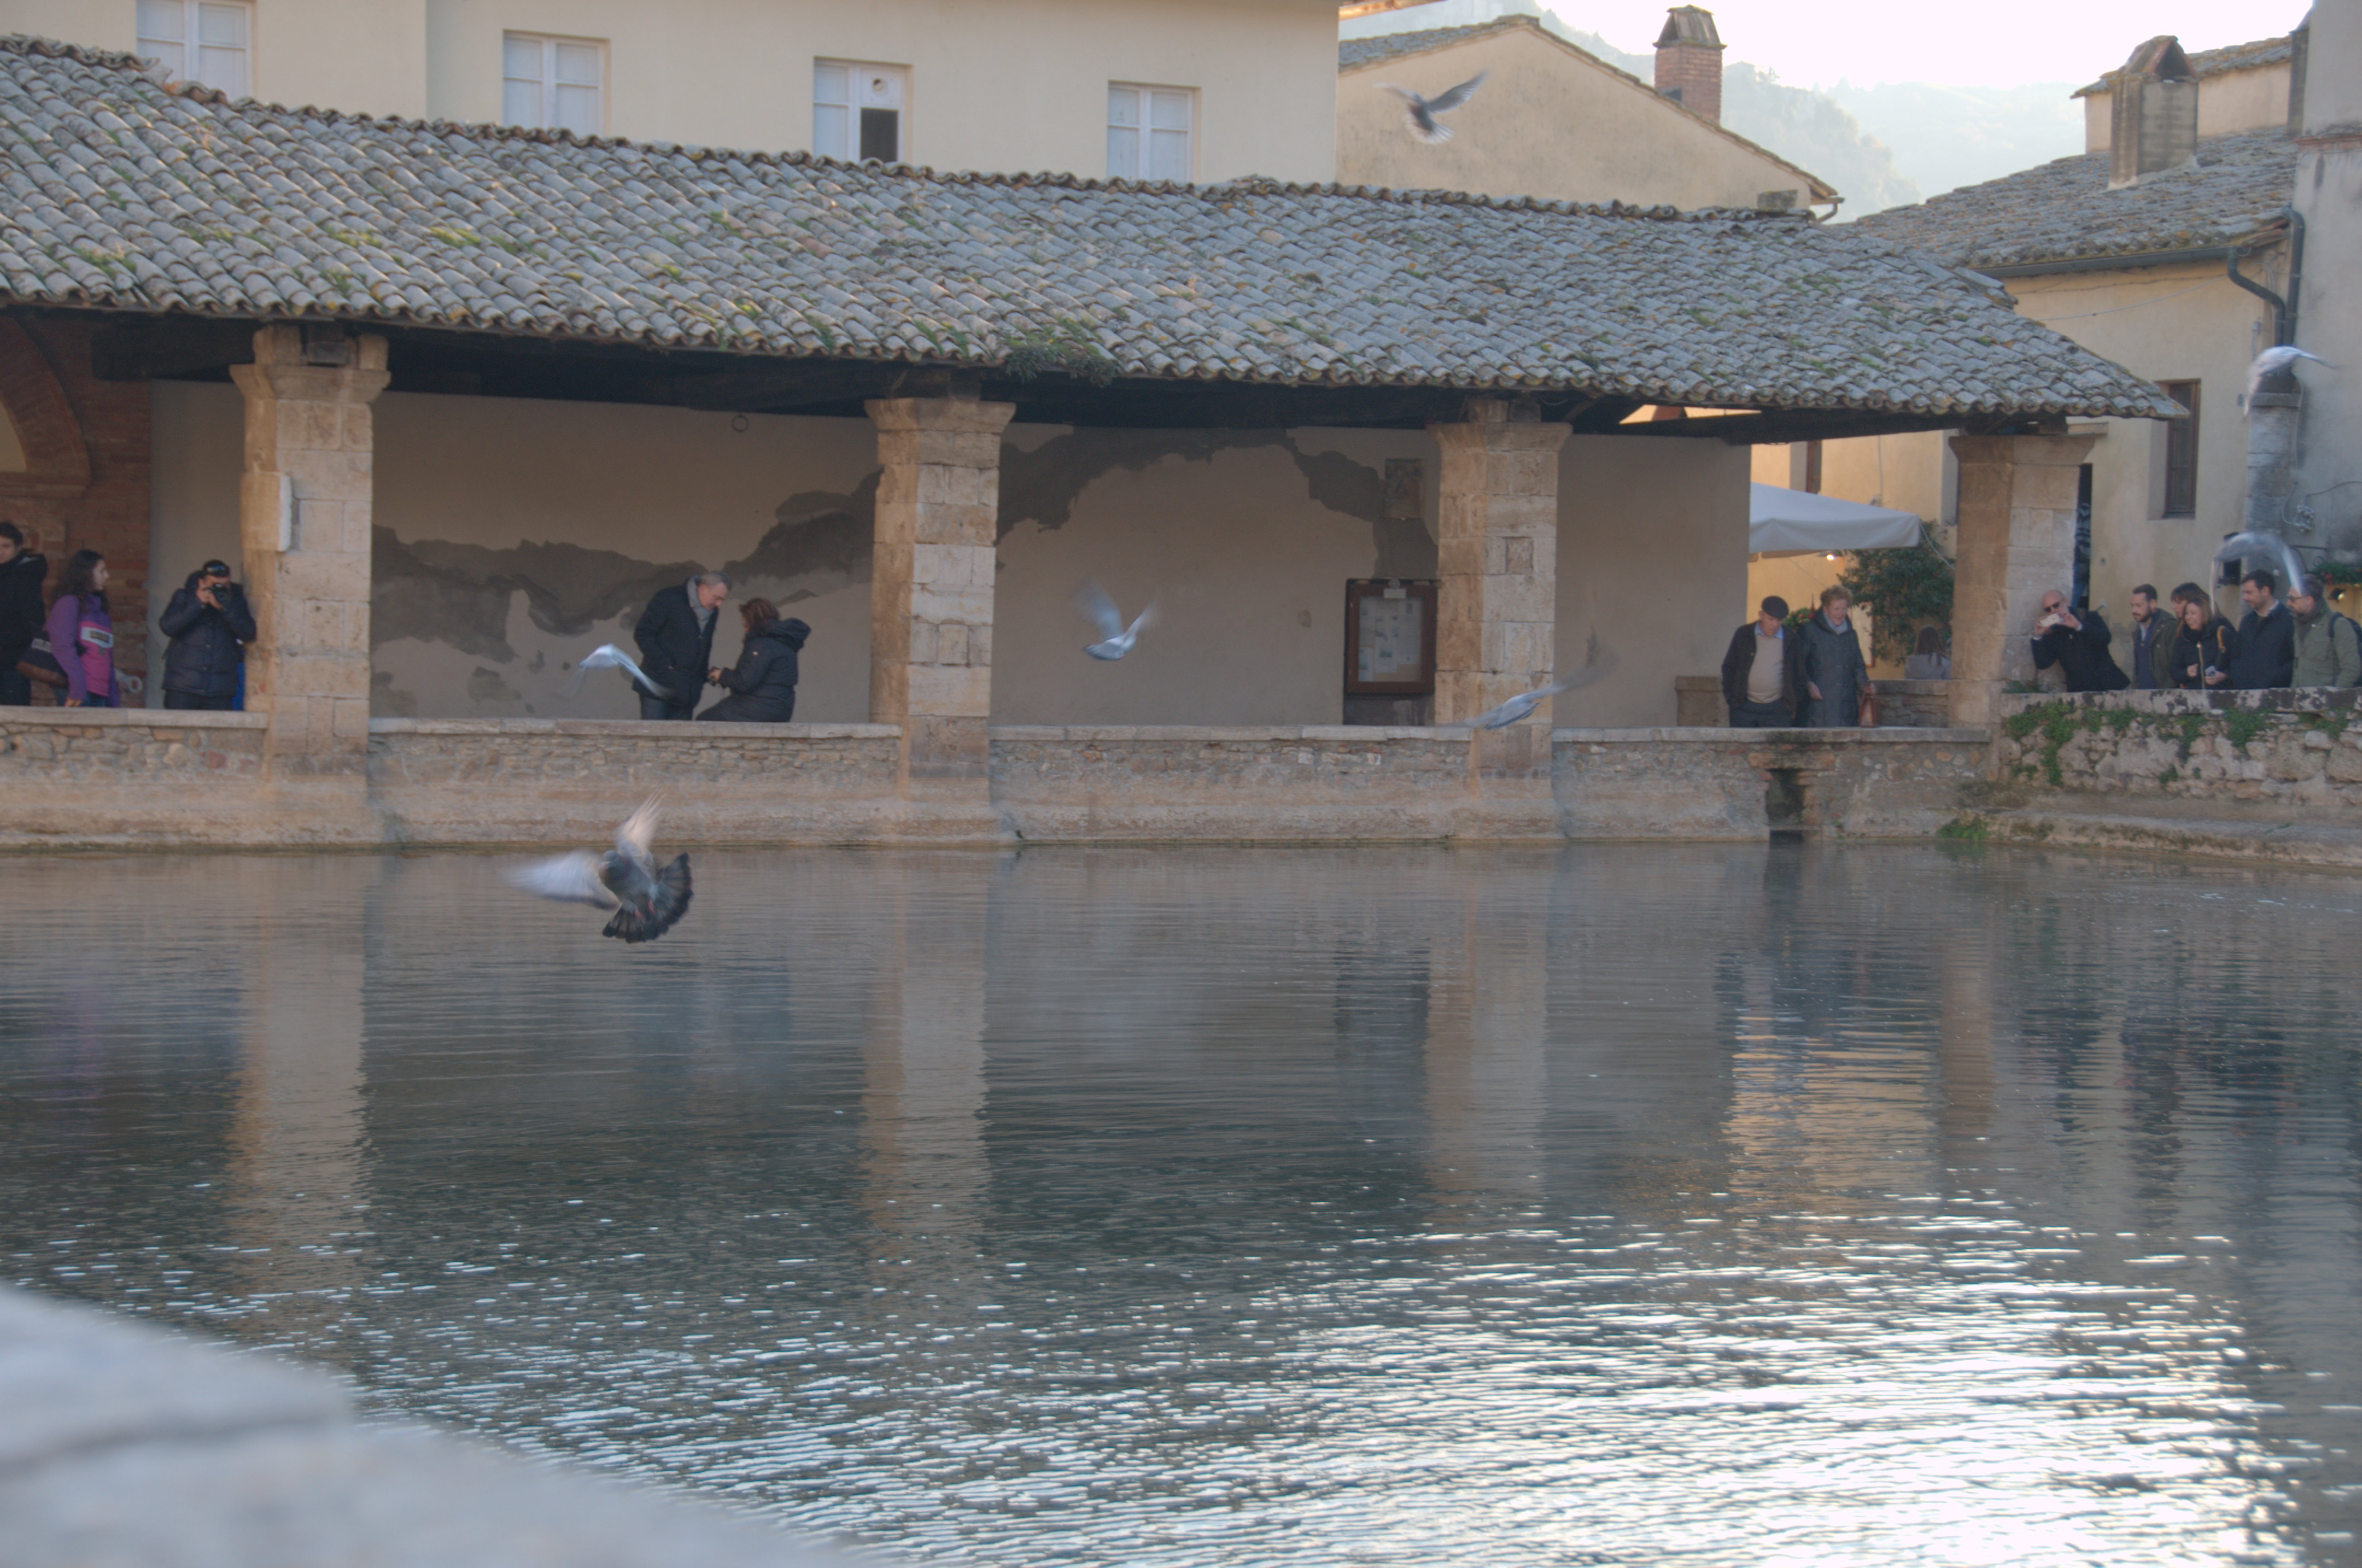 Image showing a roman bath in the centre of a spa town bagno vignone in val dorcia area of tuscany unesco world heritage site